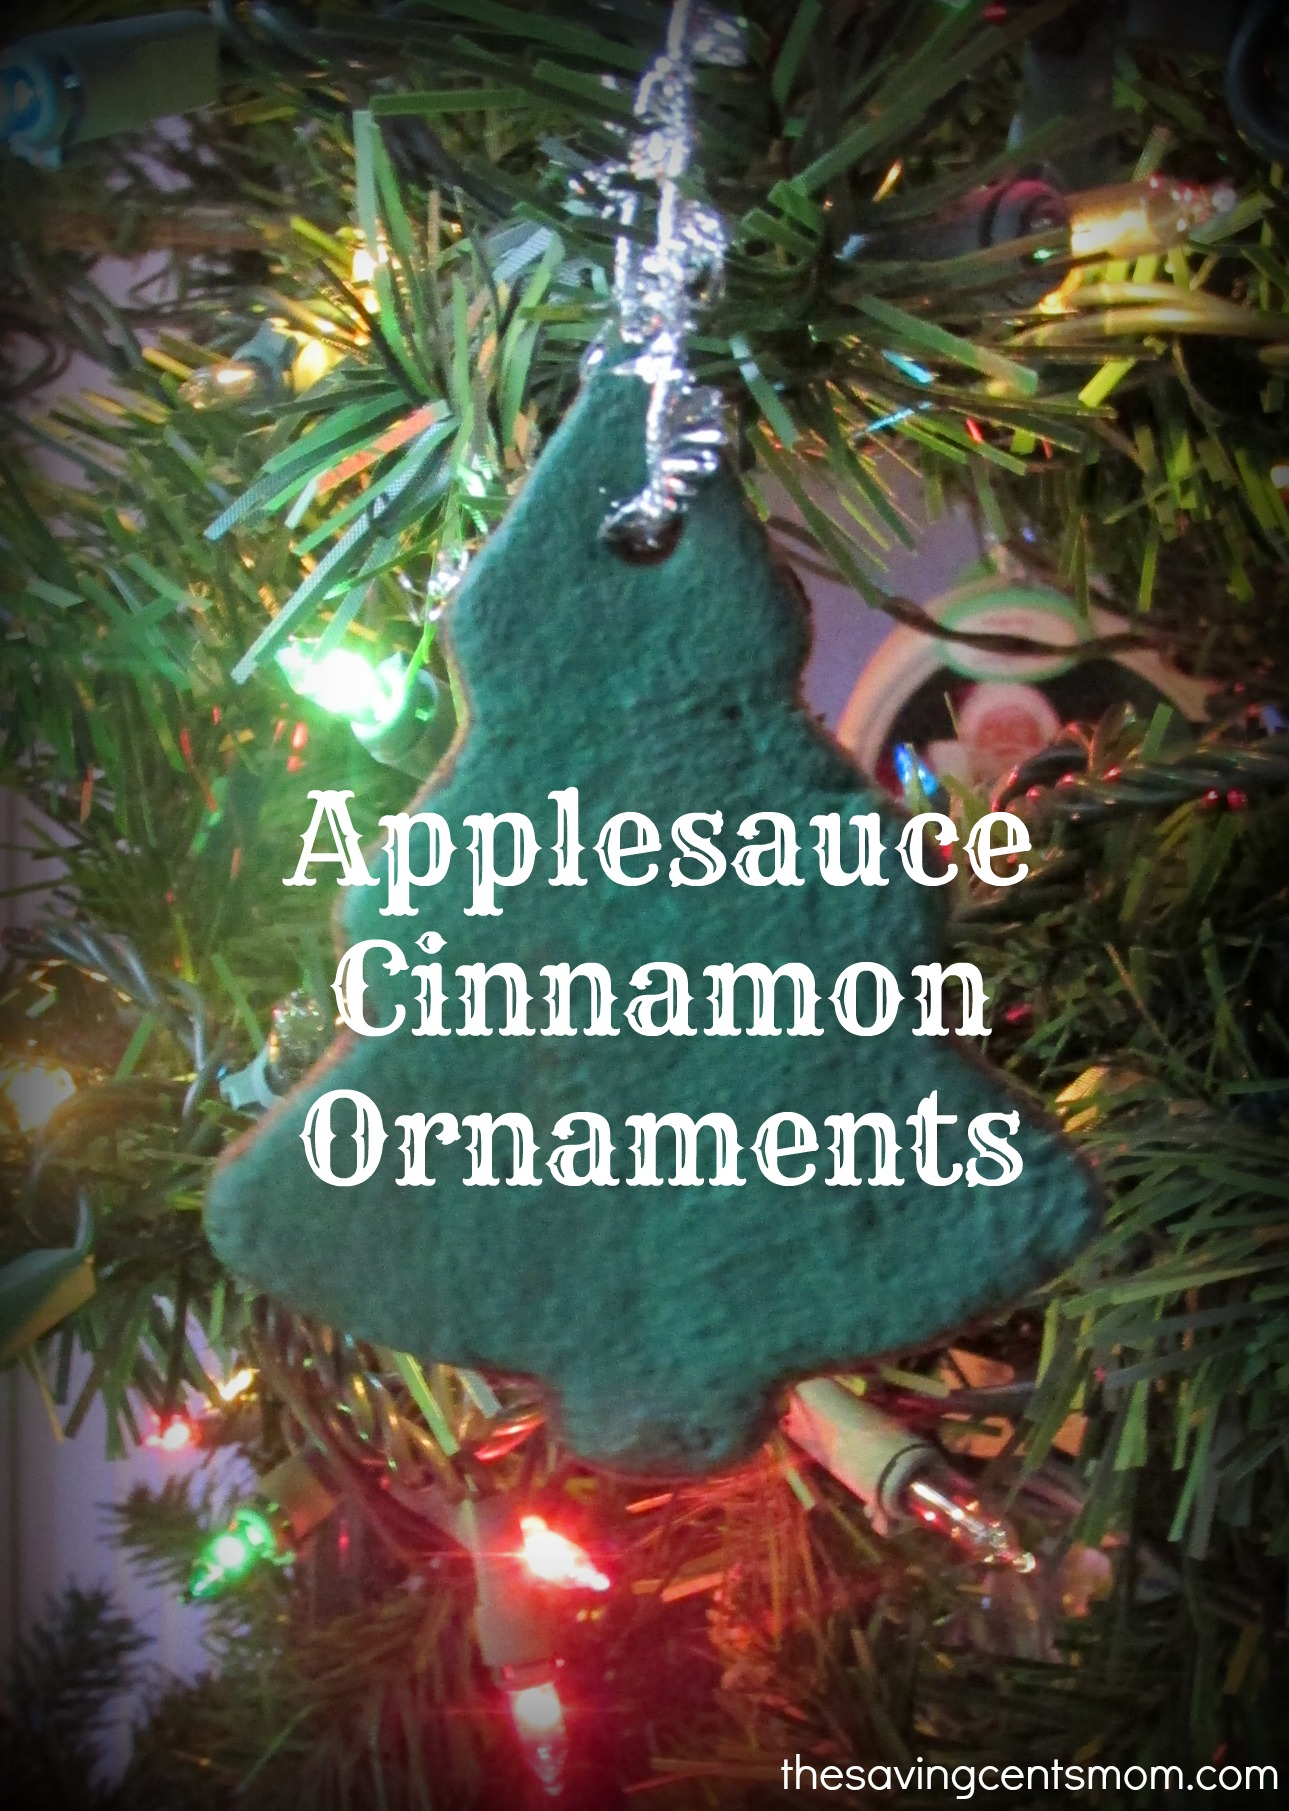 Applesauce Cinnamon Ornaments Olfactory Sensory Activity 3 Boys And A Dog